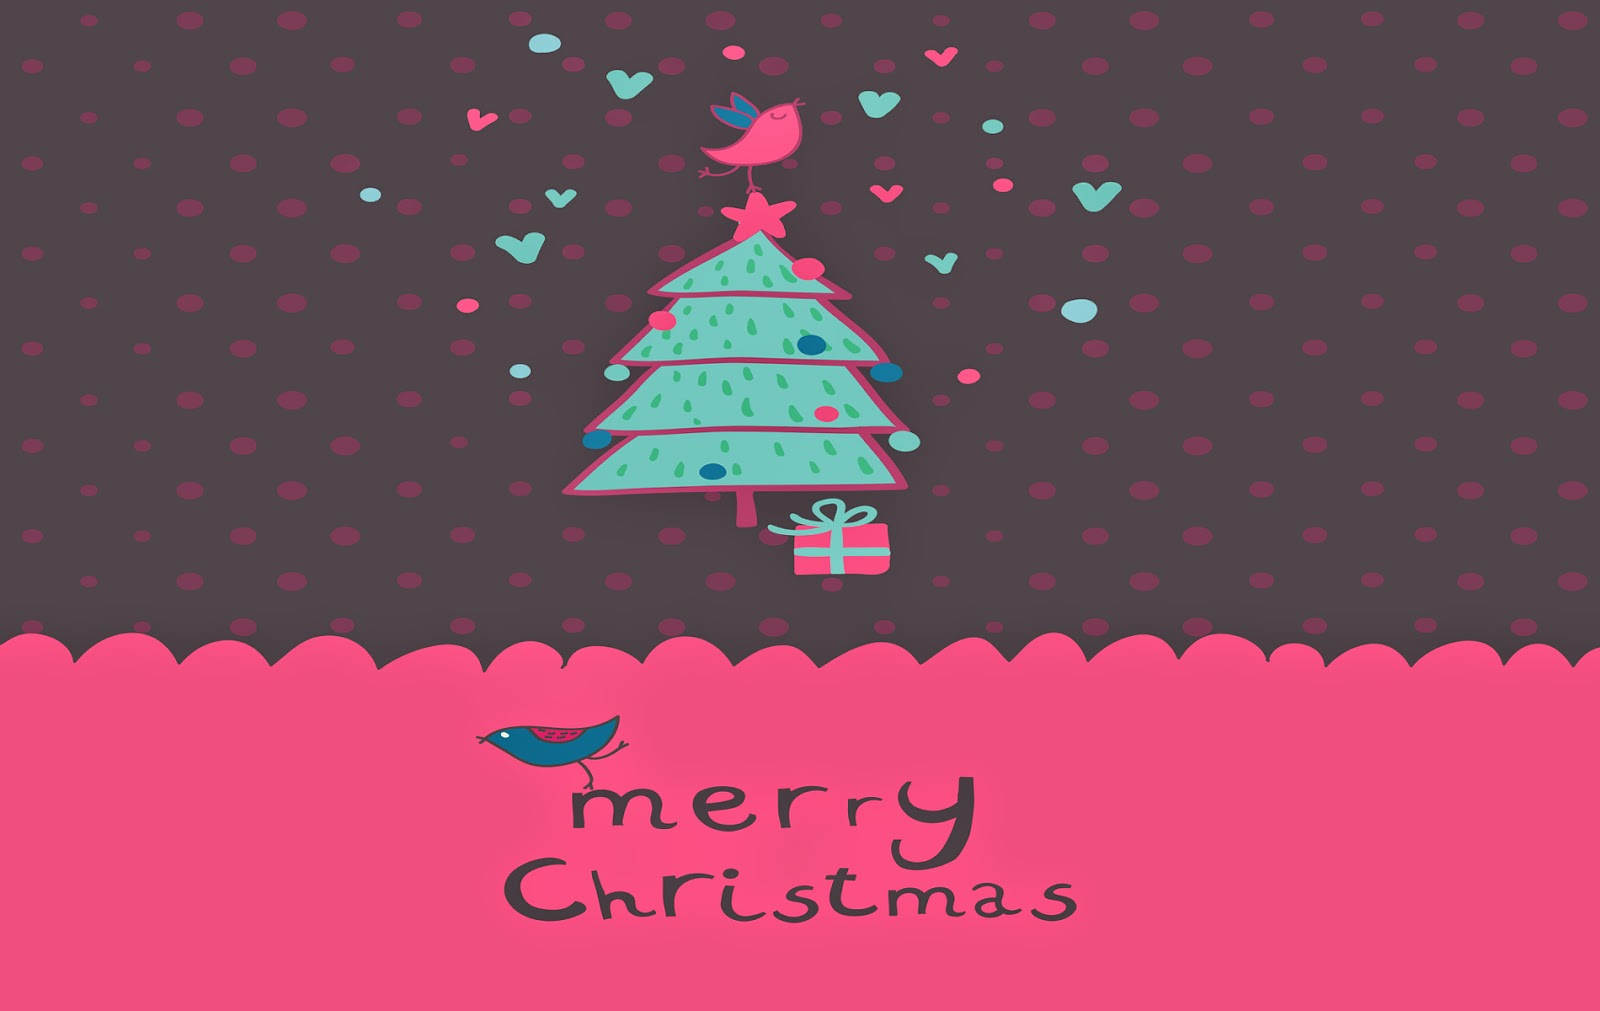 merry_christmas_wallpapers_for_girls_friends_image_free_download.jpg